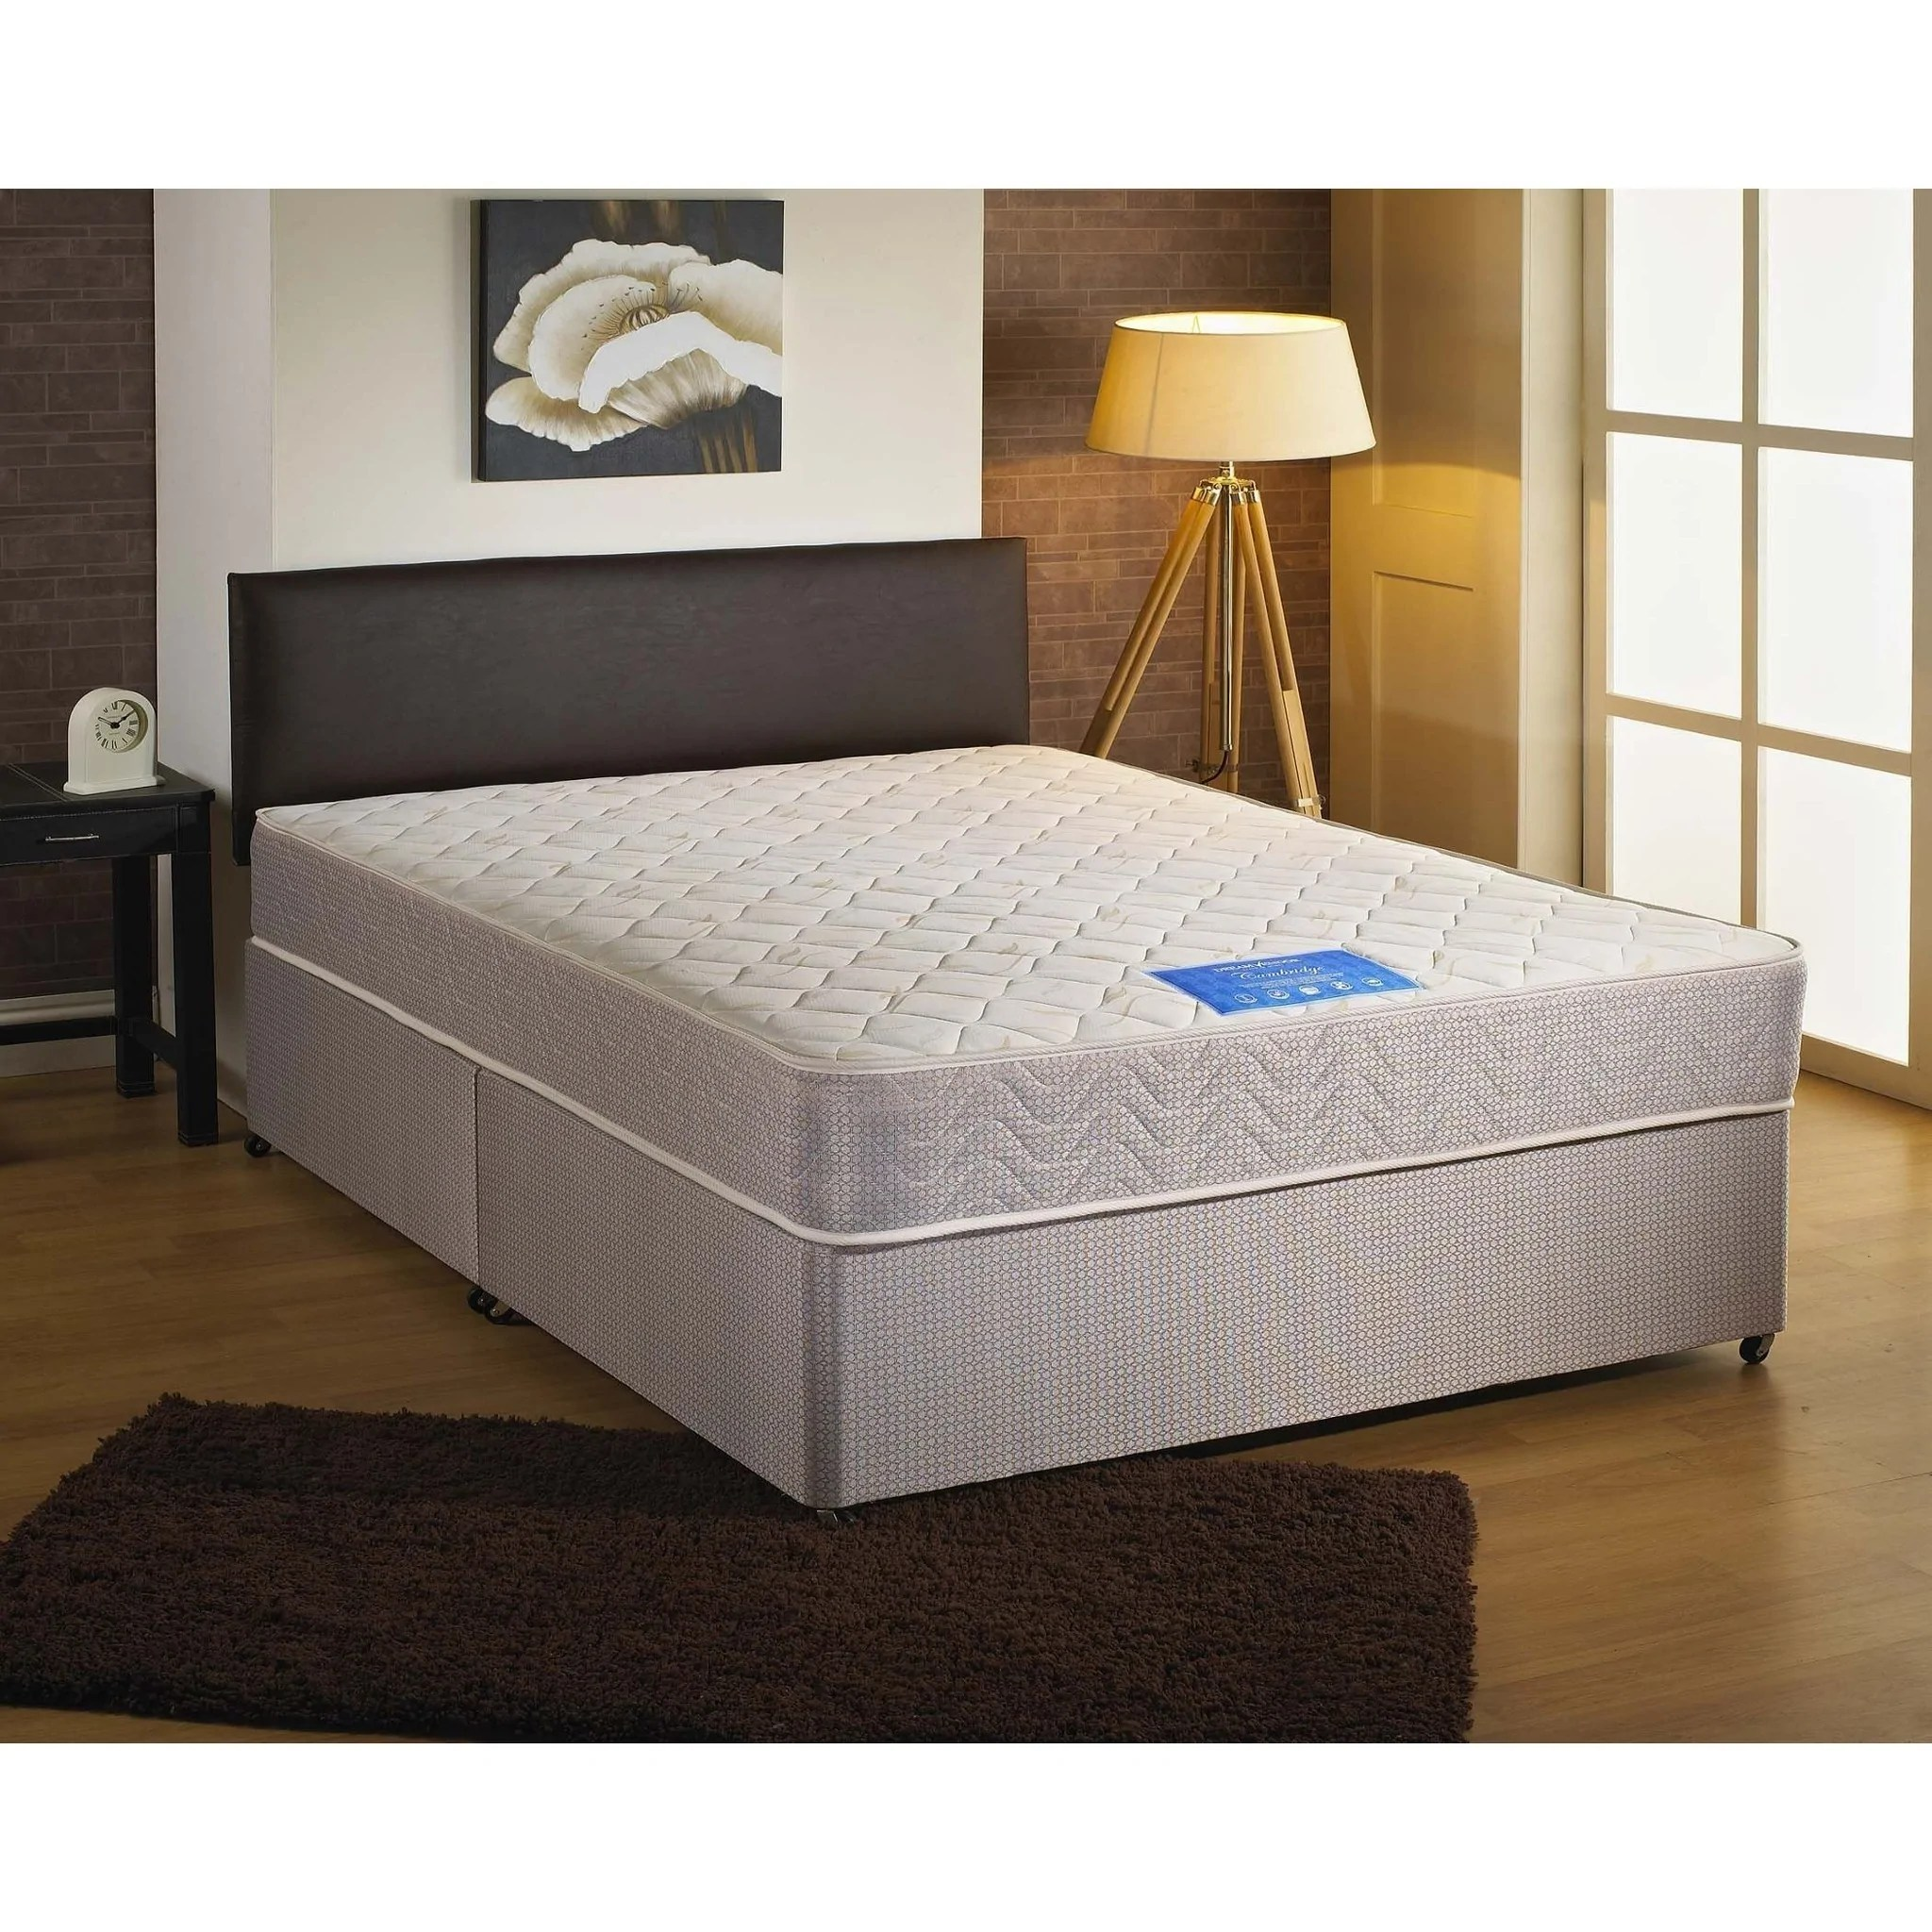 Double Divan Beds Cambridge Double Divan Bed Sure Sleep Beds